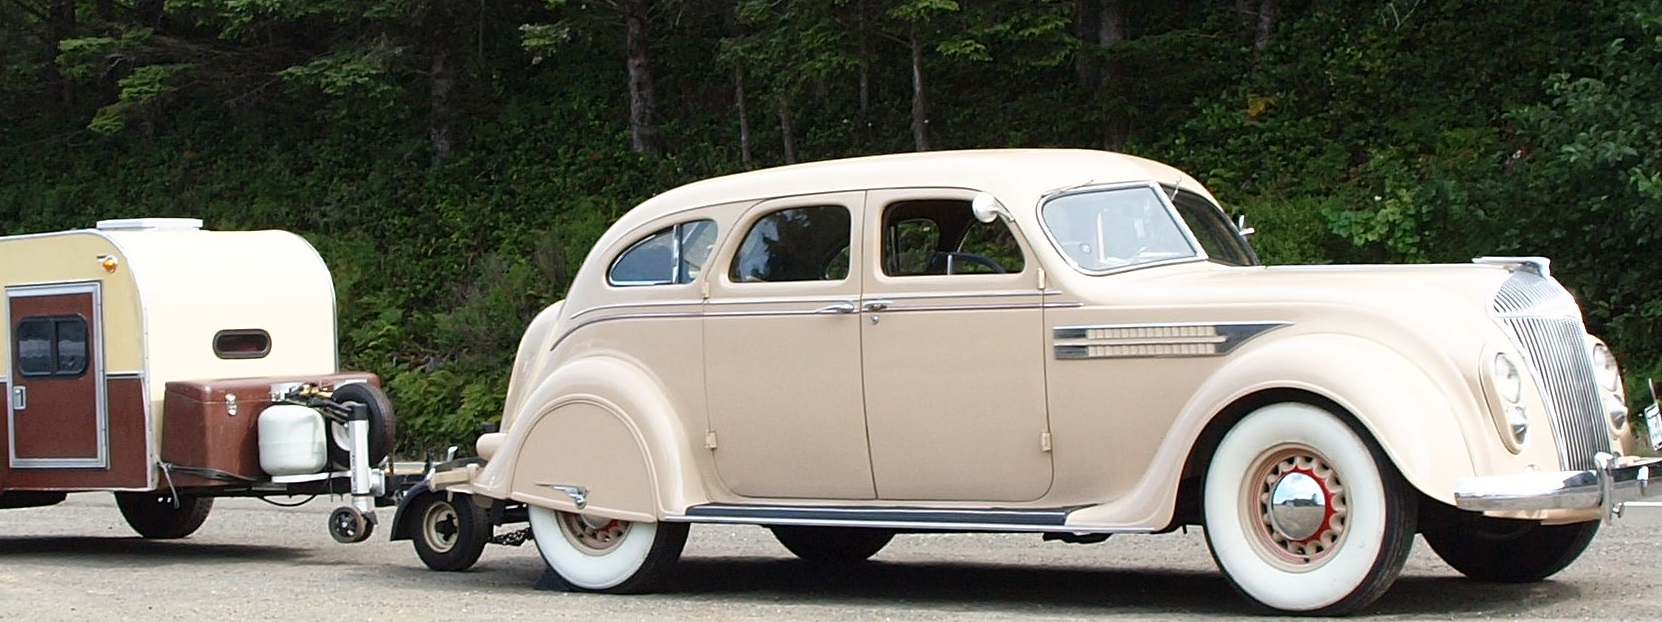 1936 Chrysler C10 Imperial Sedan